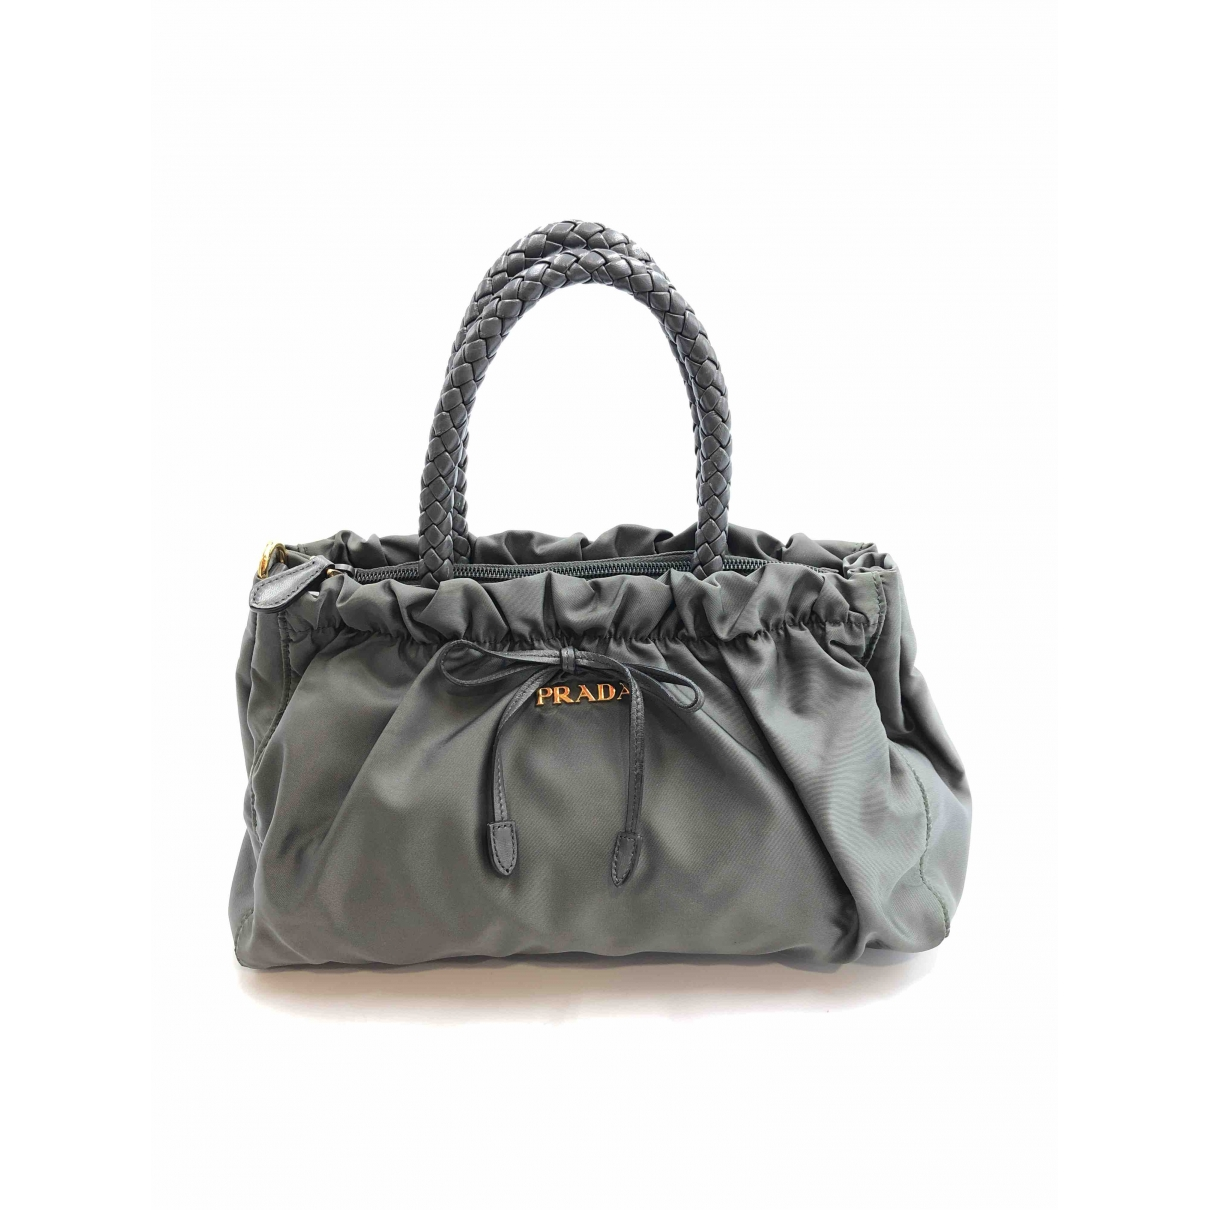 Prada \N Grey Cotton handbag for Women \N